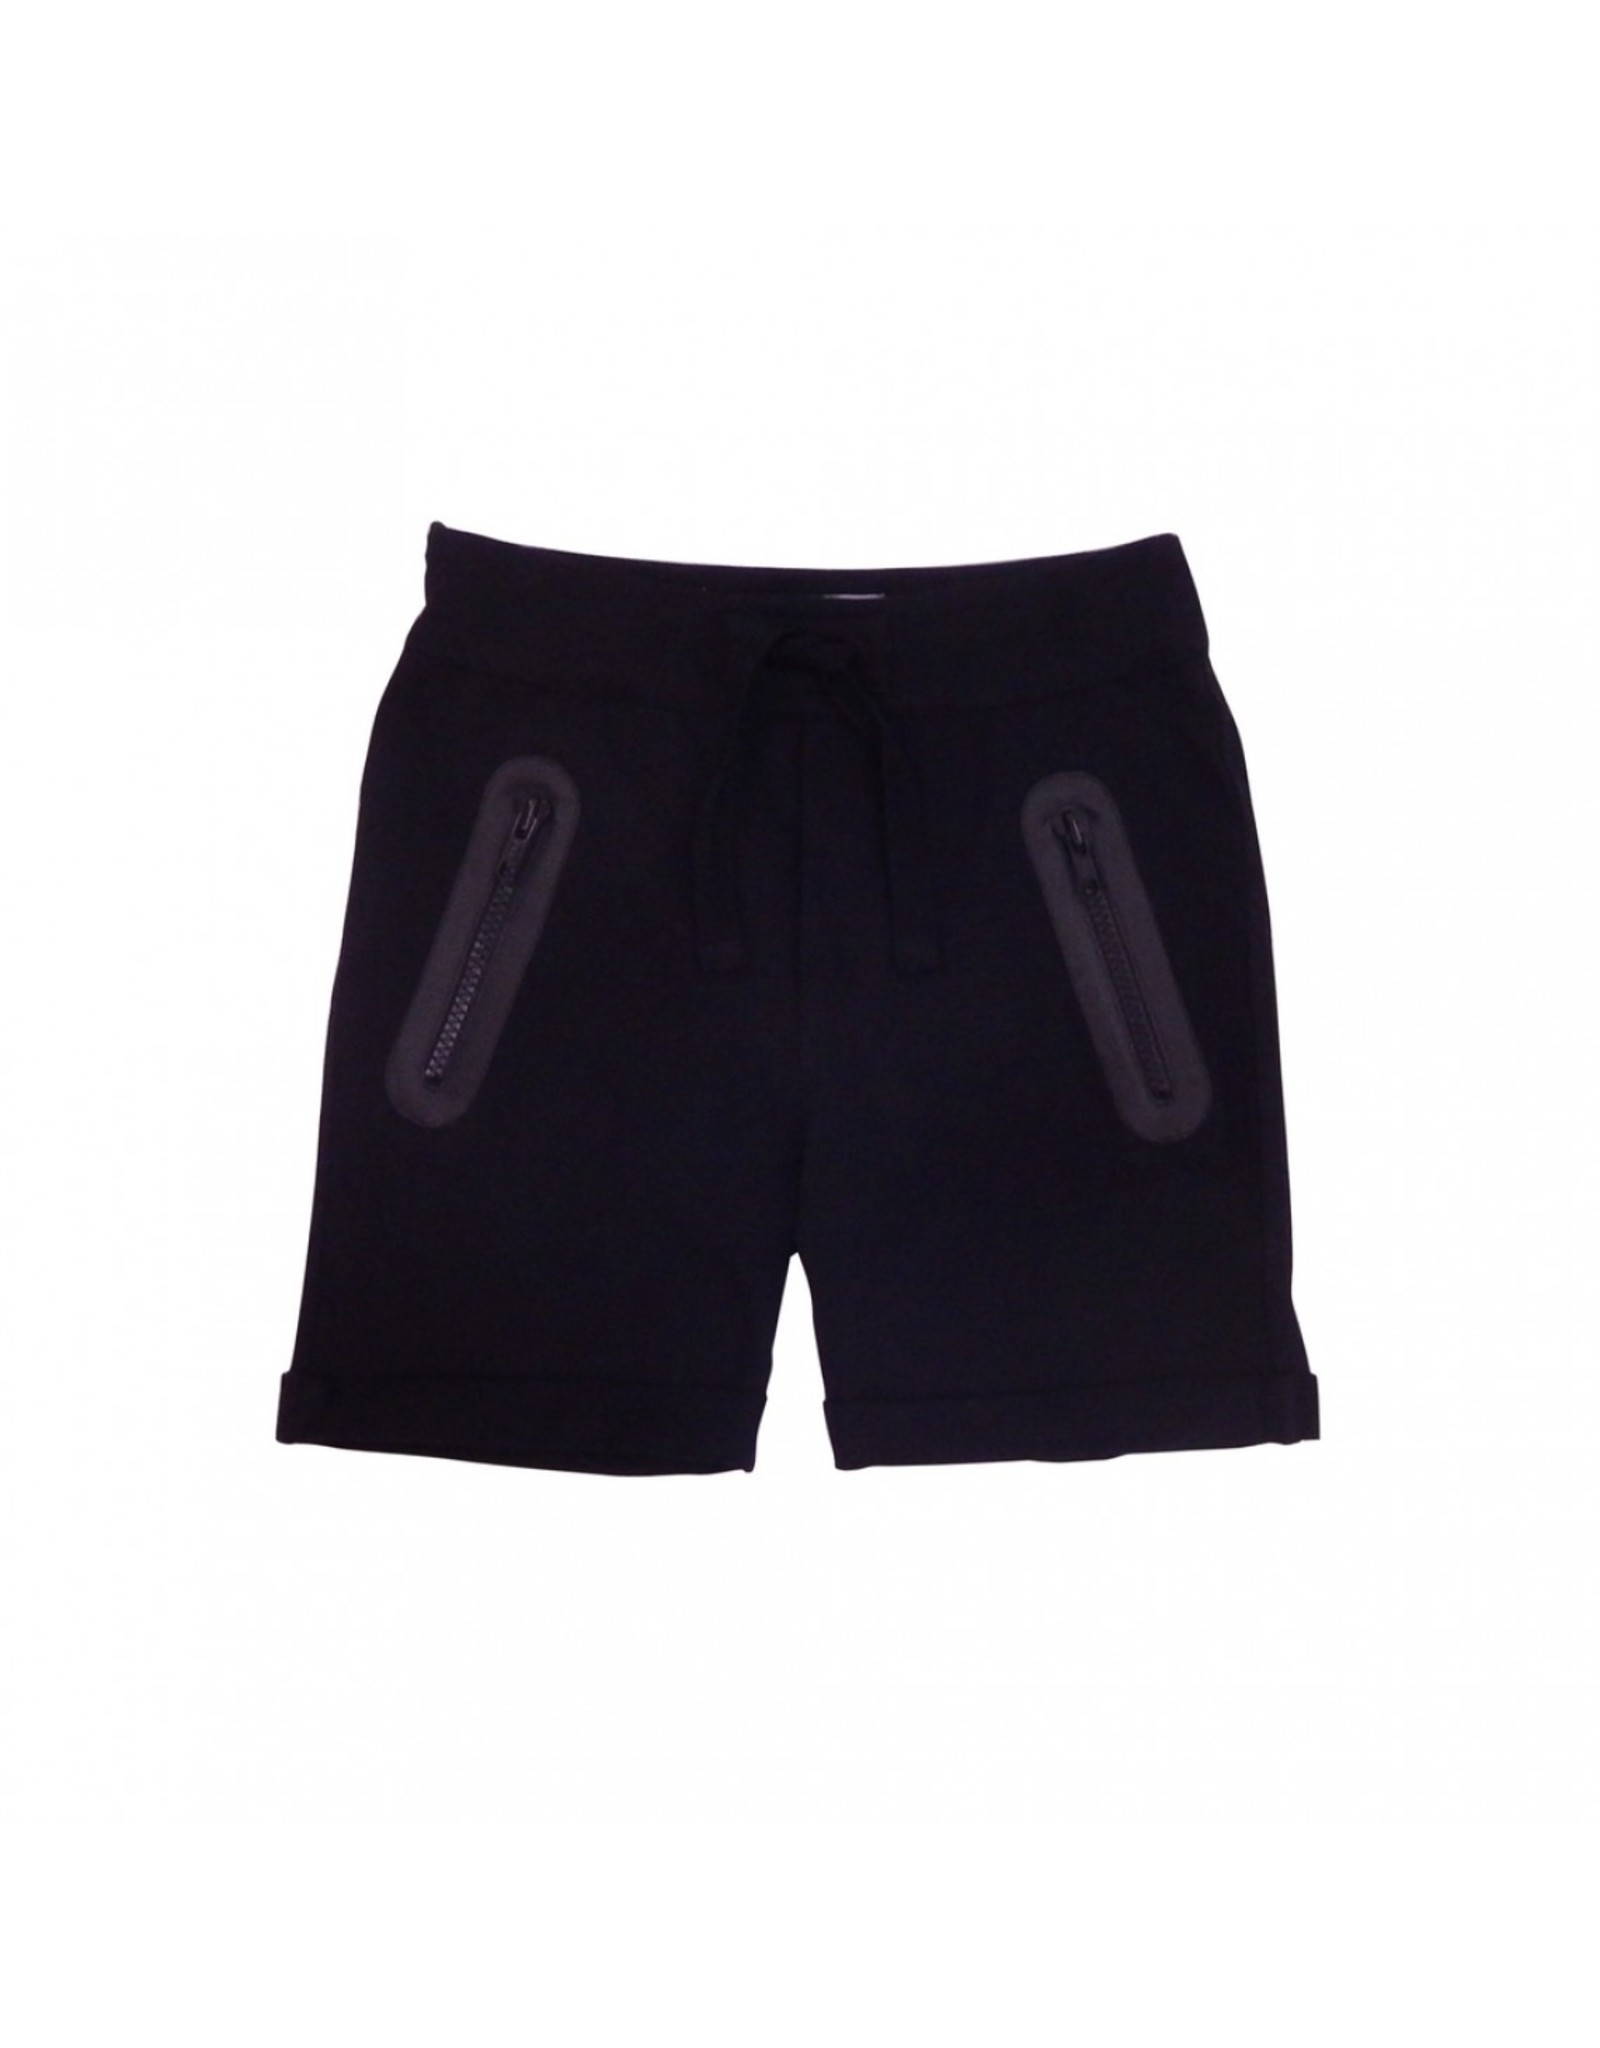 Legends Legends Short Al BLACK